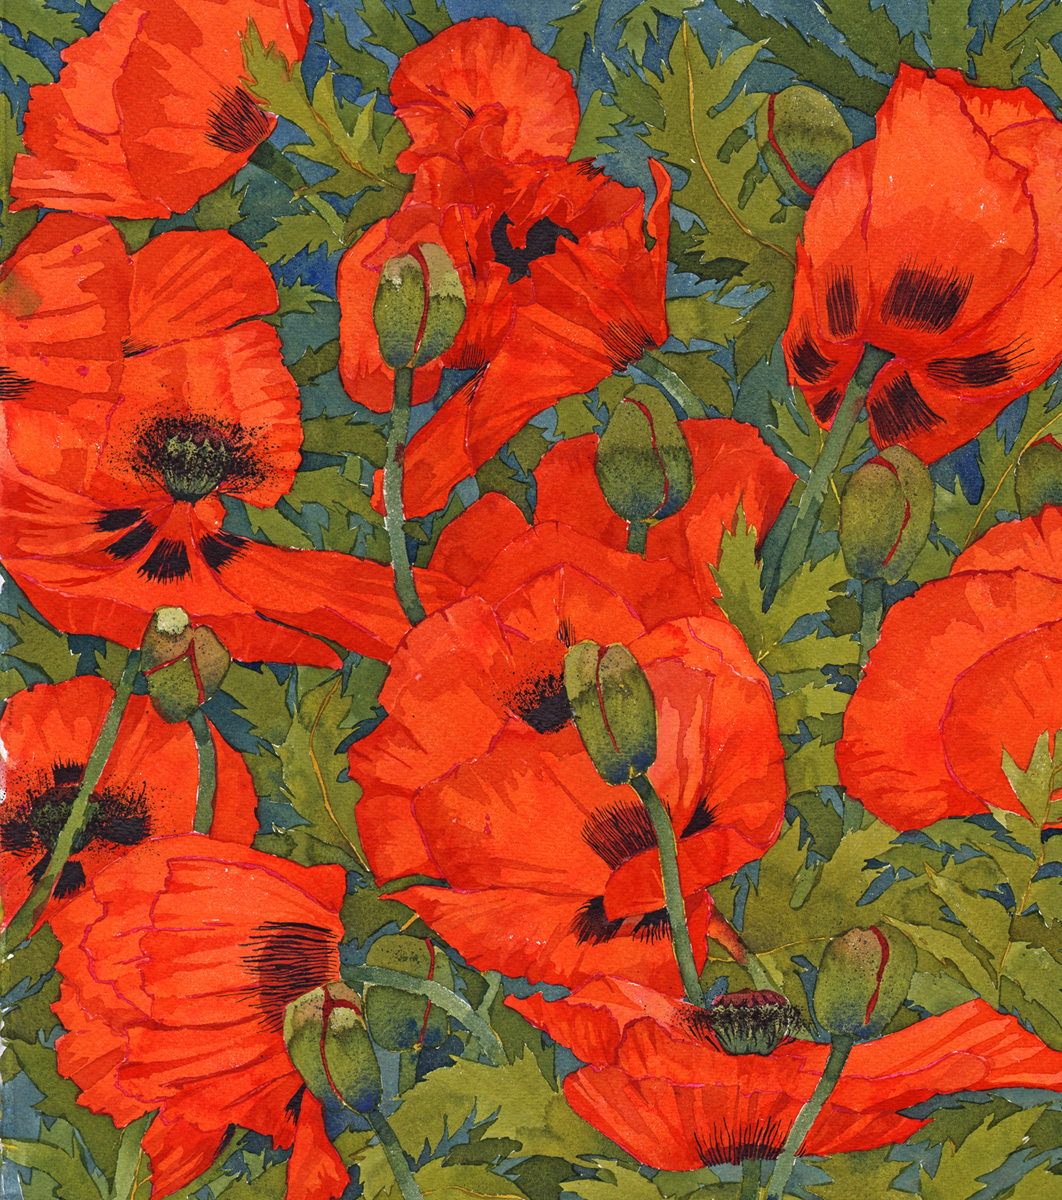 Oriental Poppies II SOLD image